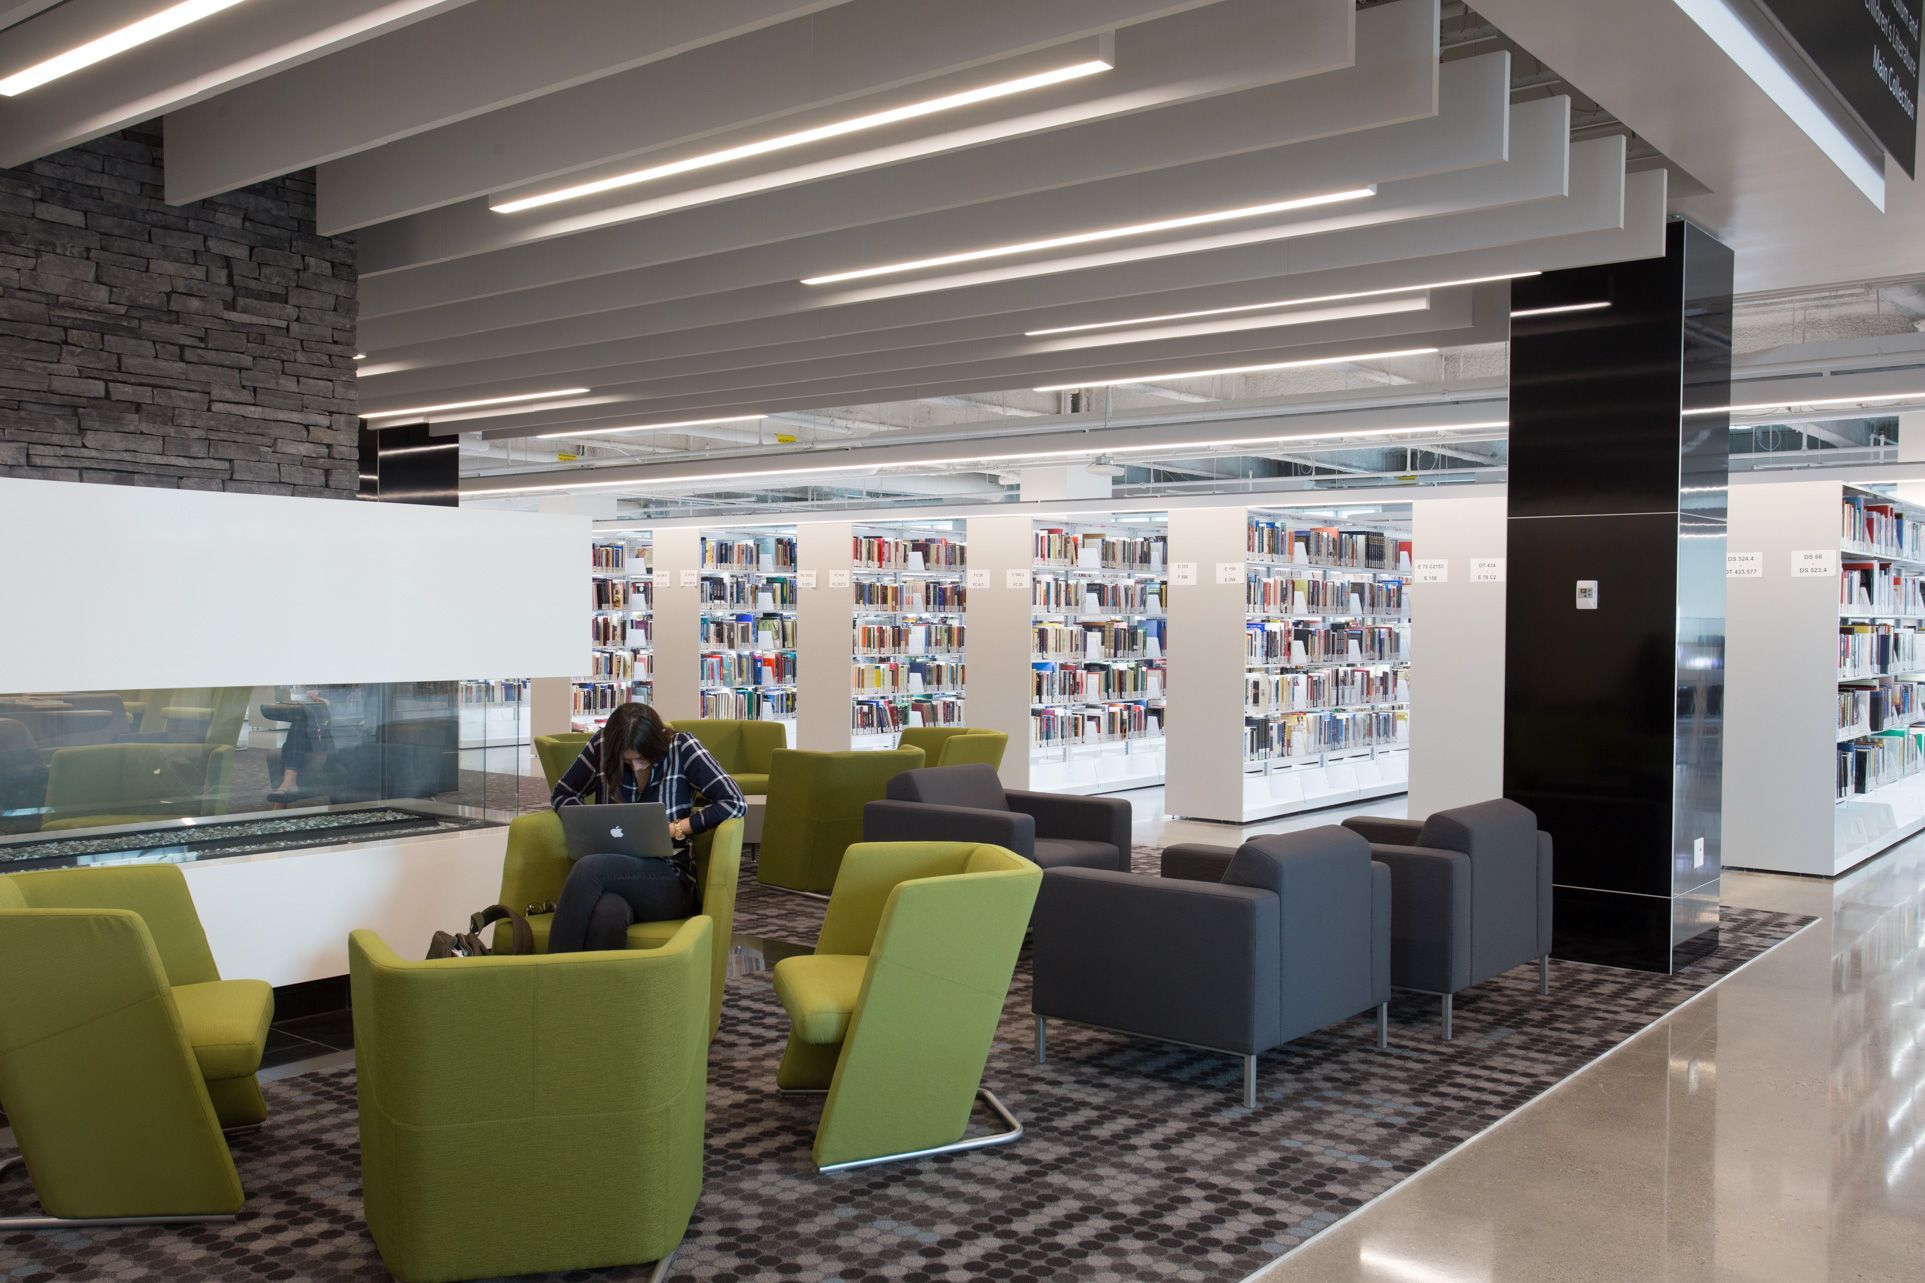 Case Study Undergraduate Library Design With Images Library